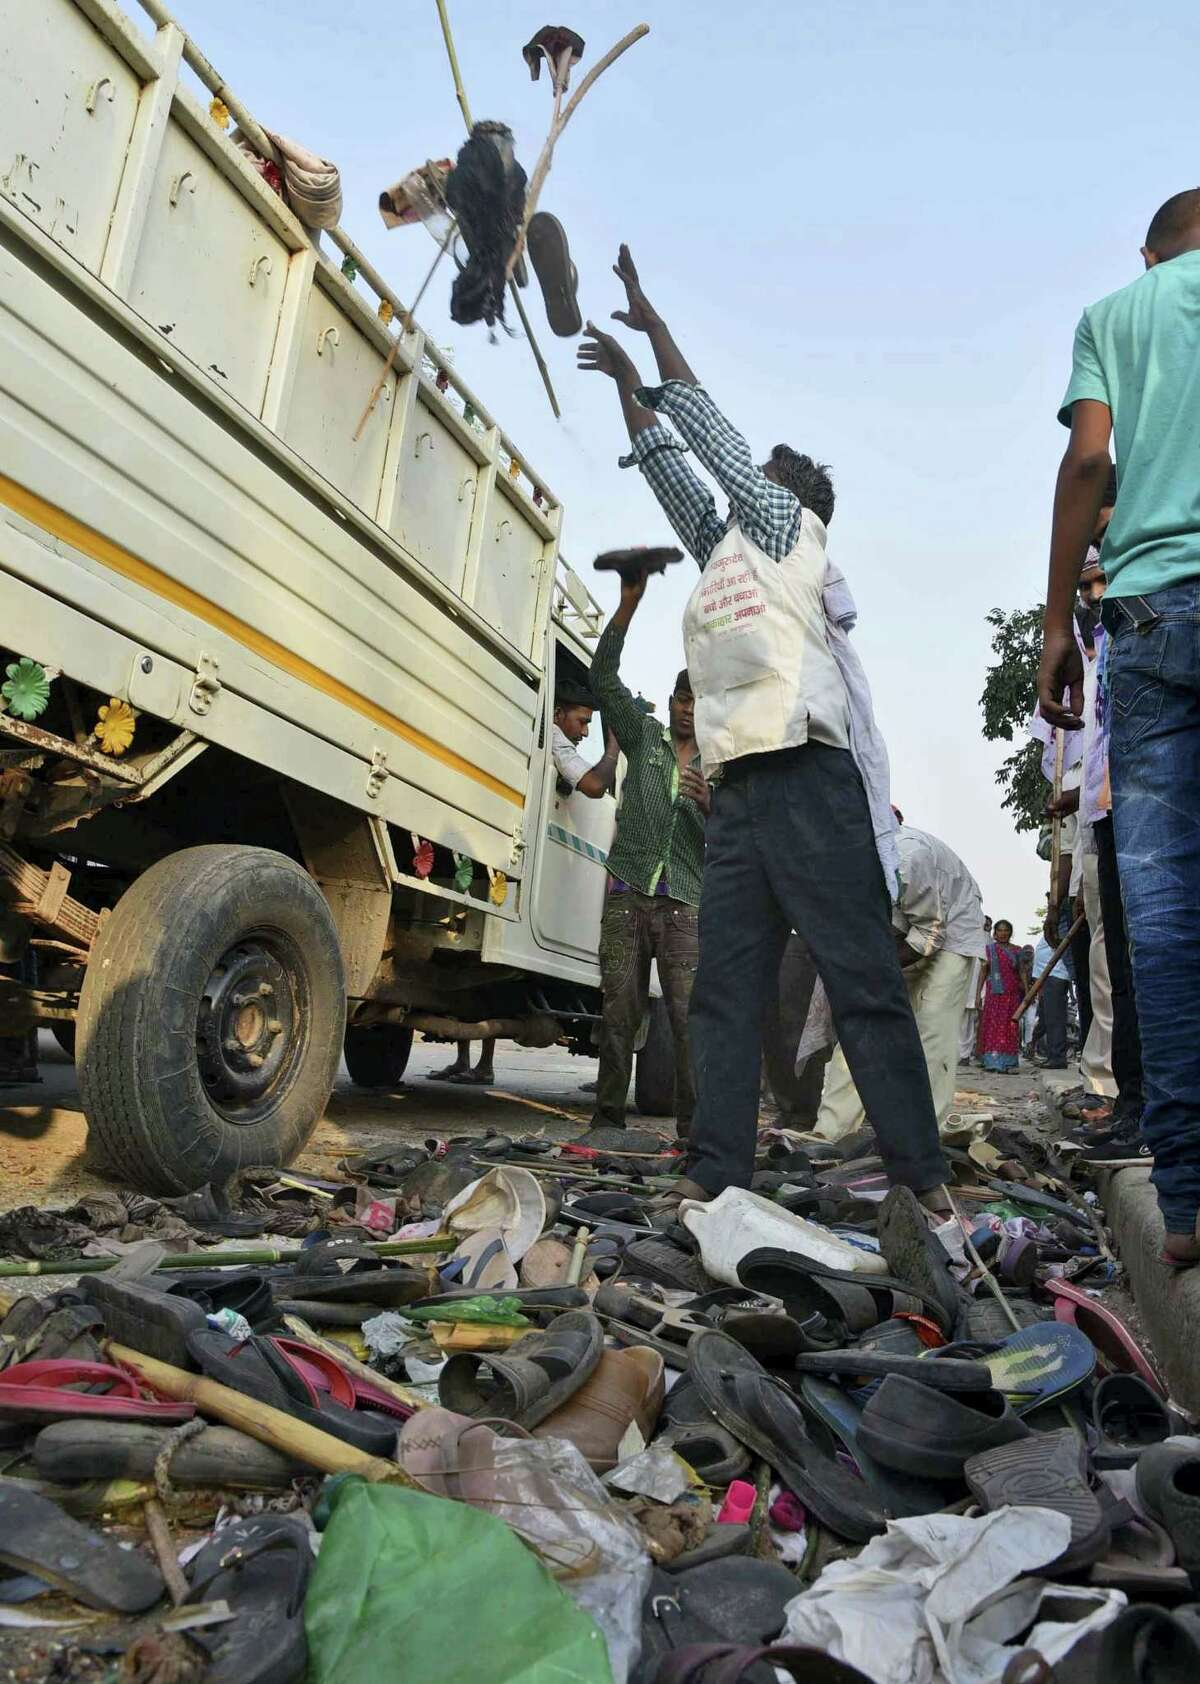 A man loads a truck with footwear of victims of a stampede on a crowded bridge on the outskirts of Varanasi, India, Saturday, Oct. 15, 2016. More than a dozen people were killed and several more injured in a stampede that occurred as they were crossing a crowded bridge Saturday to reach the venue of a Hindu religious ceremony in northern India, police said. Deadly stampedes are fairly common during Indian religious festivals, where large crowds gather in small areas with few safety or crowd control measures.